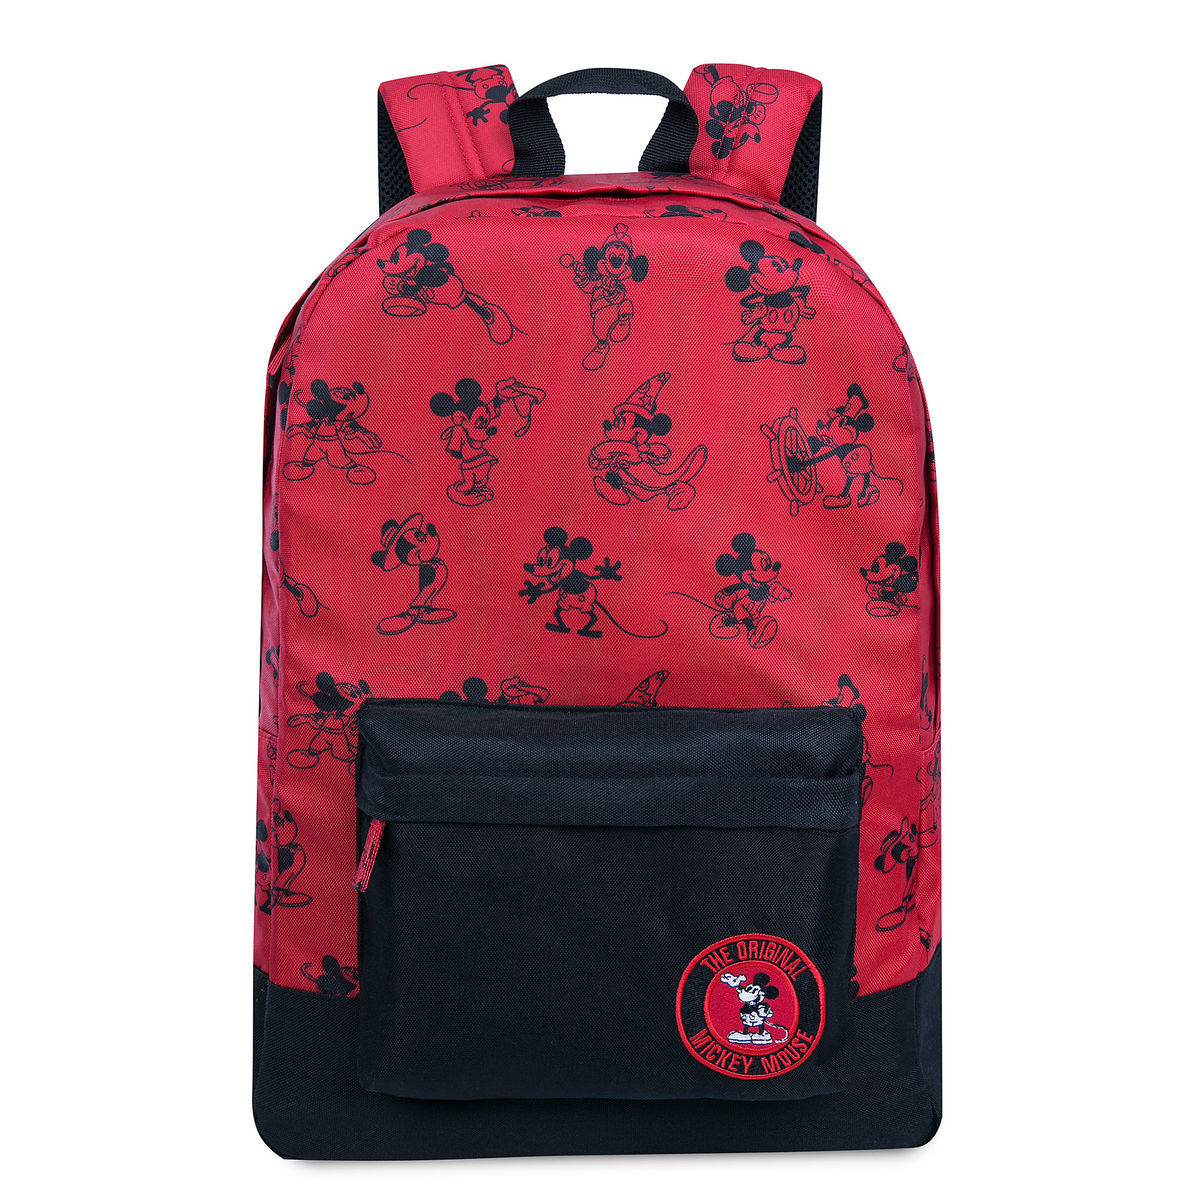 Disney Backpack Bag - Mickey Mouse Memories